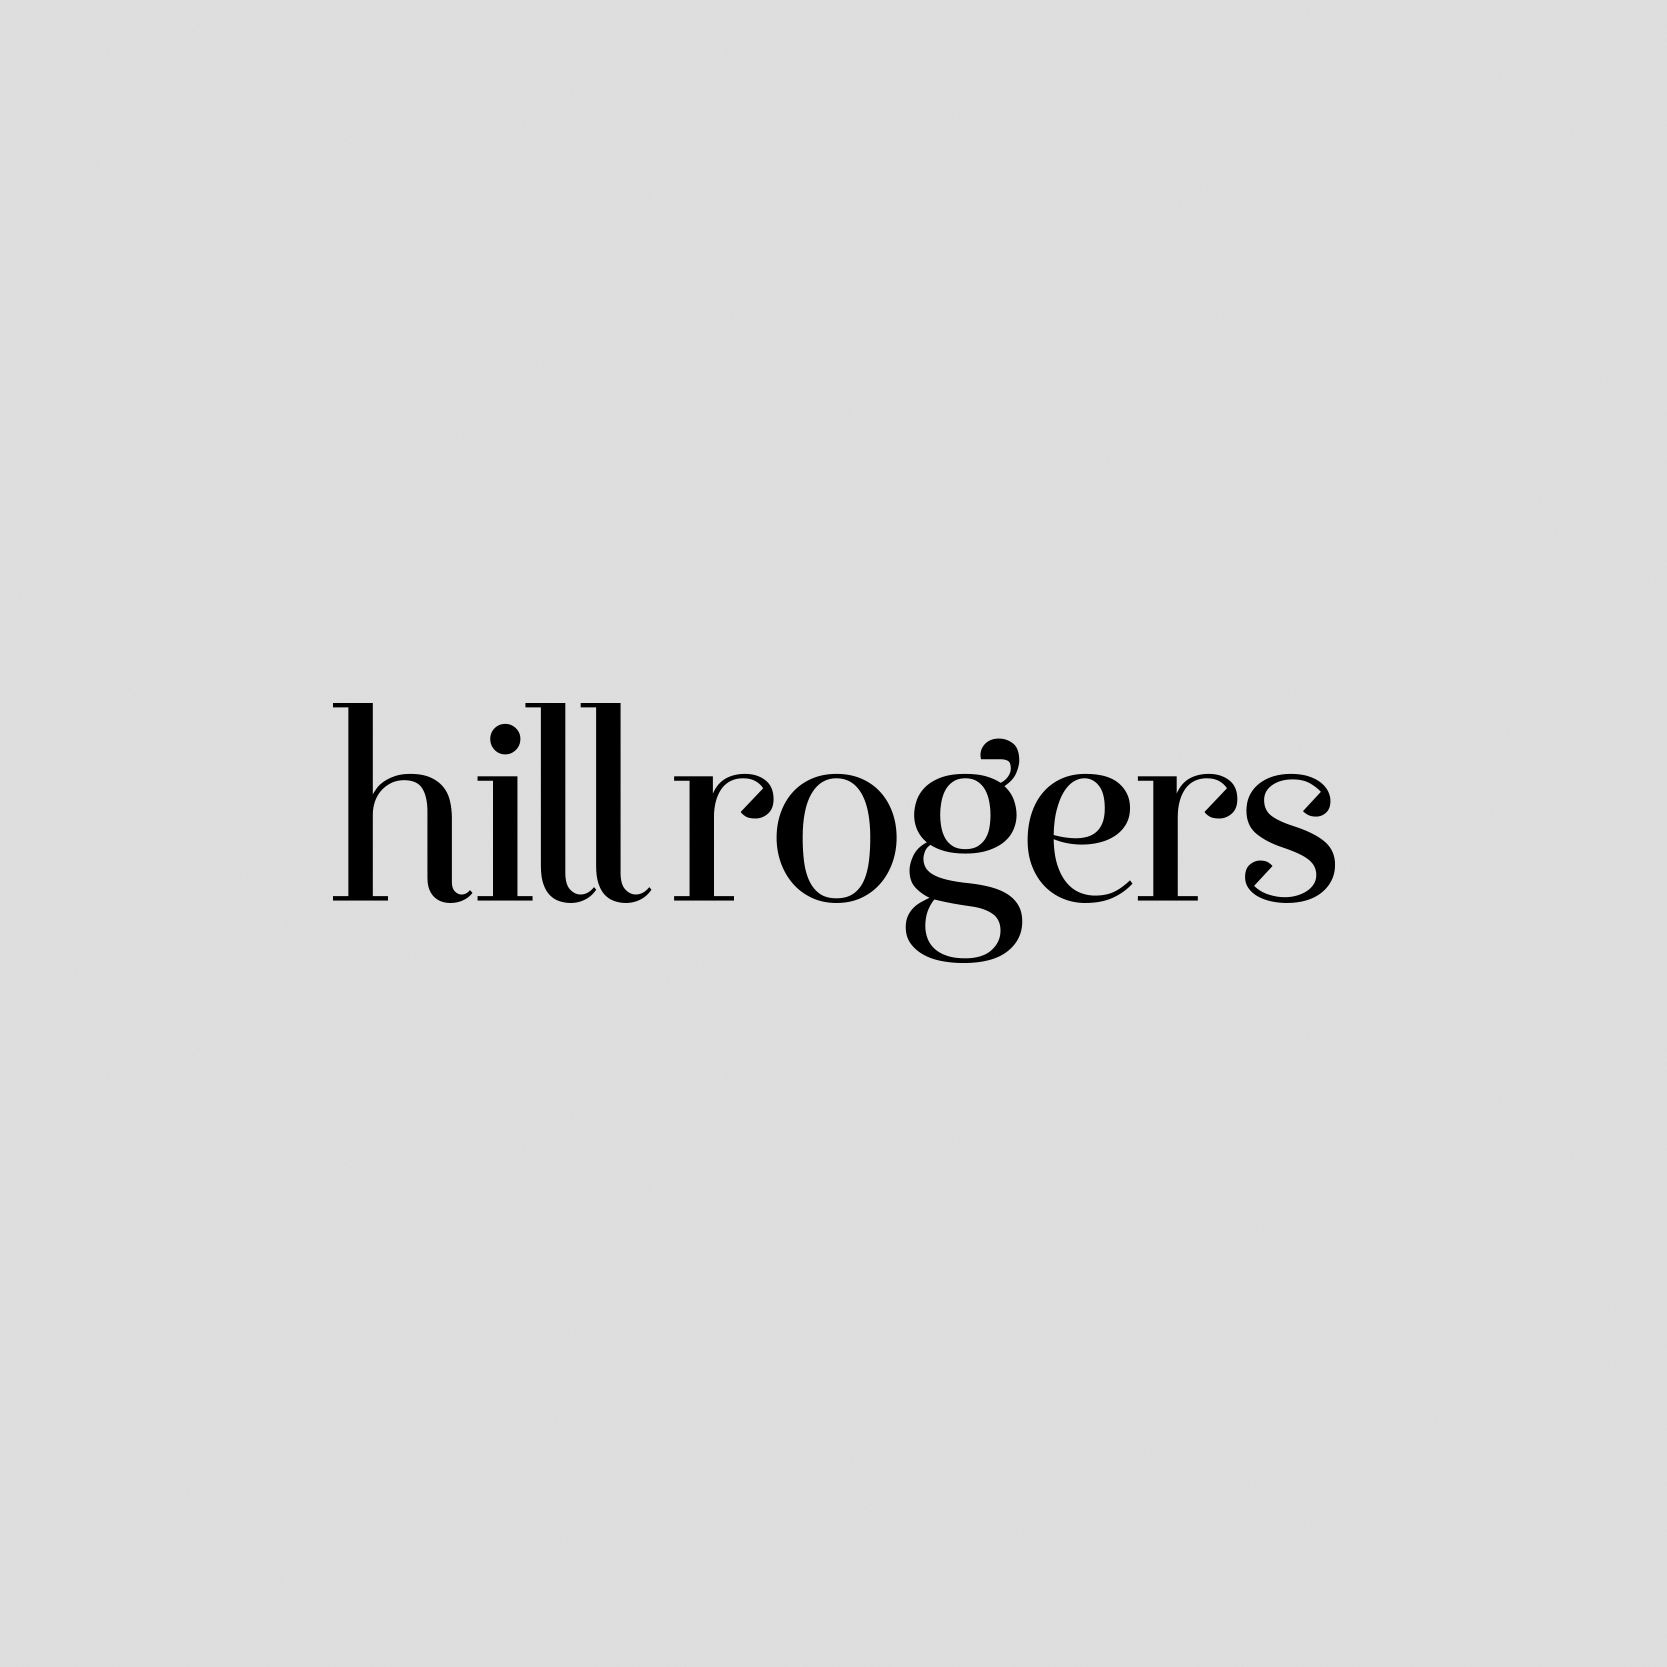 Hill Rogers